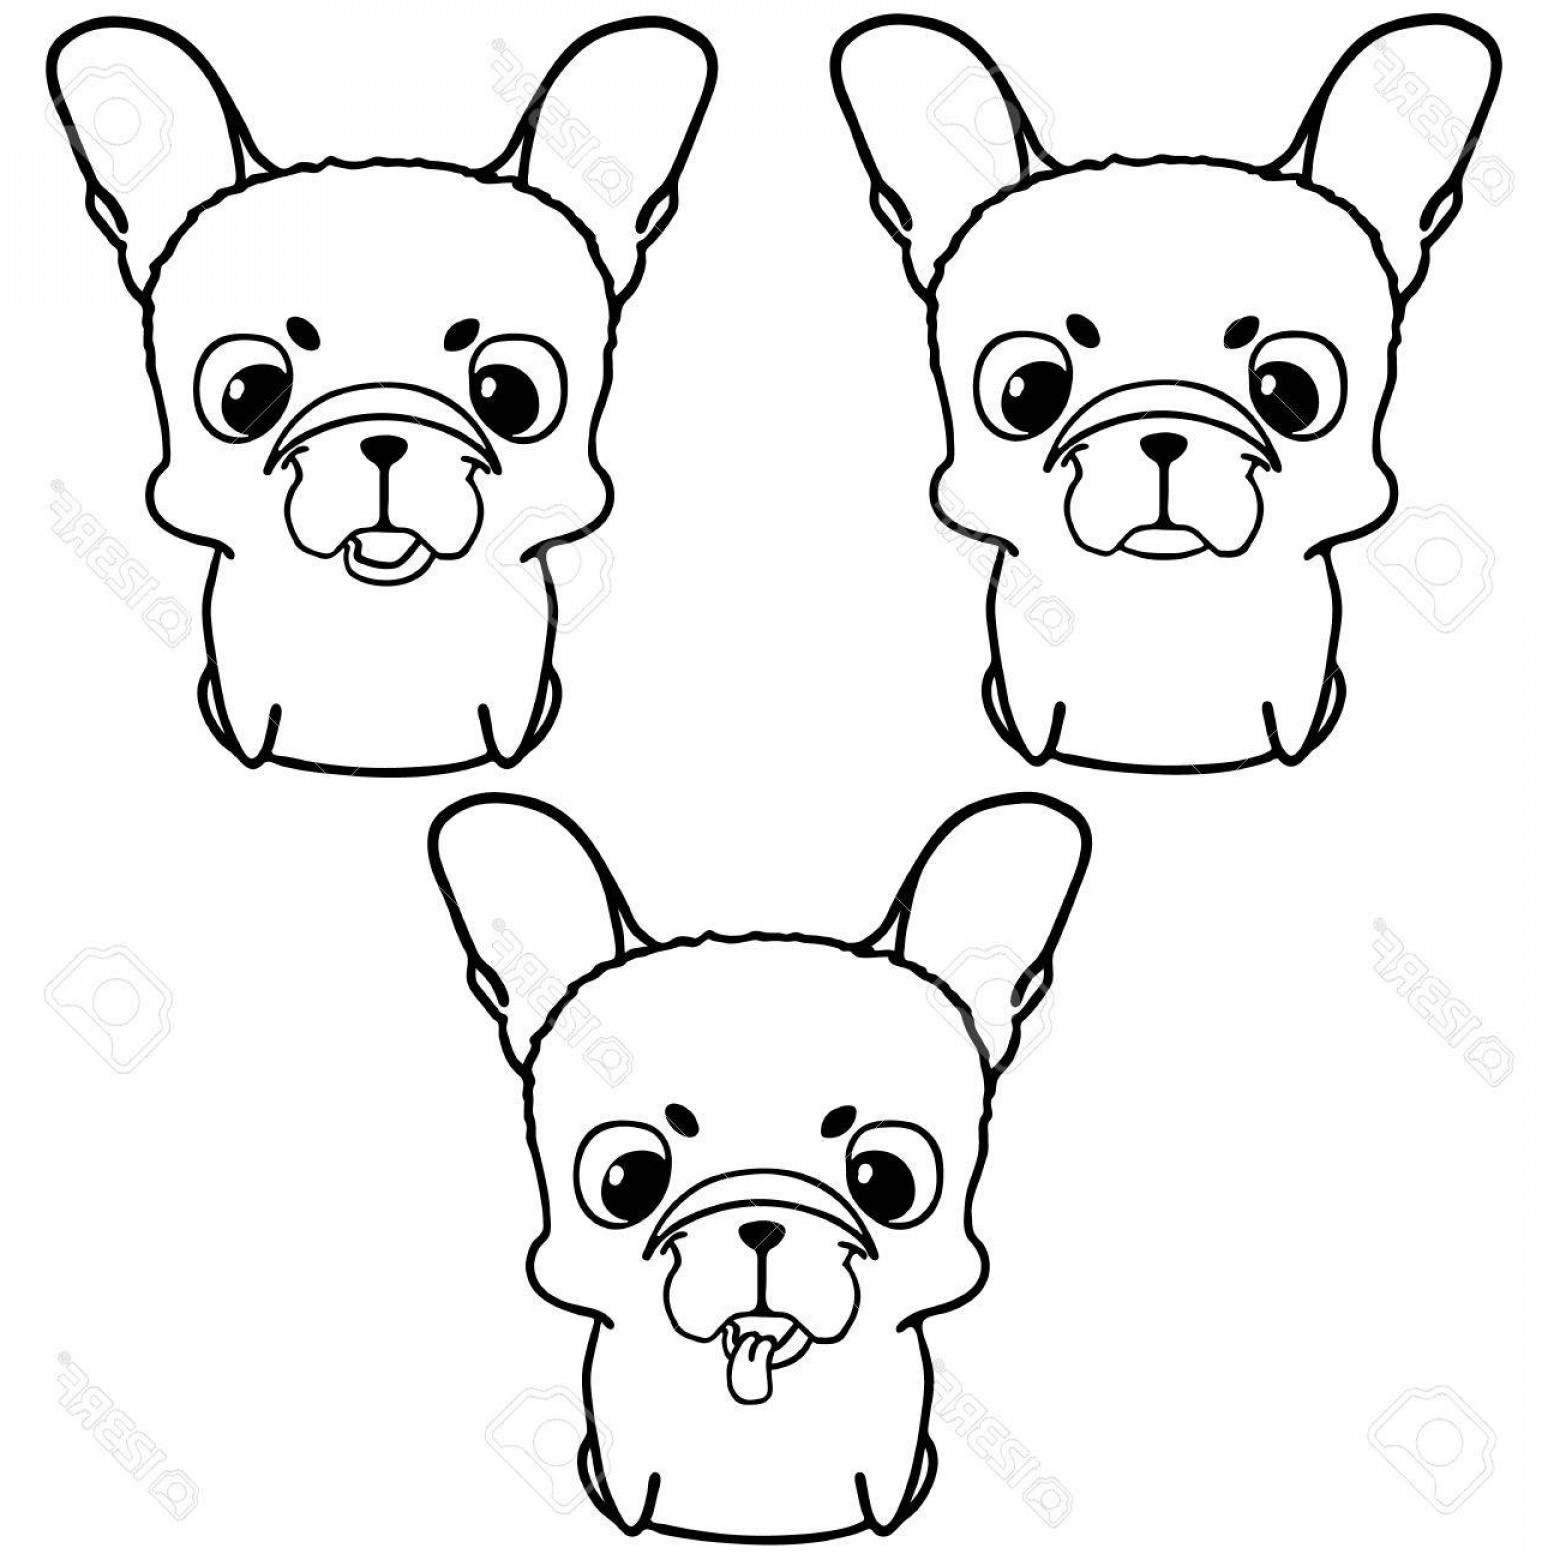 Vector Smiling Bulldog: Photostock Vector Set Of French Bulldog Puppies Black And White Illustration Of Cute Little Dog With Big Head Smiling